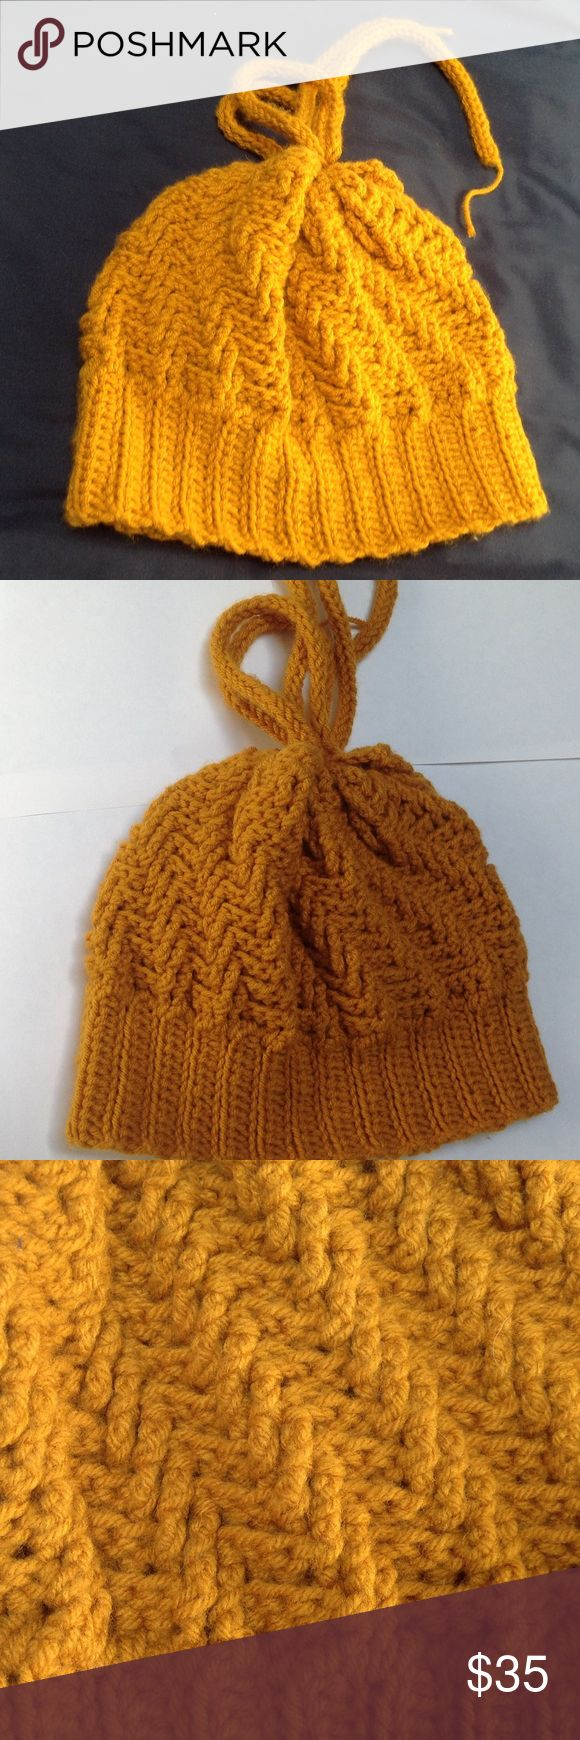 Crochet Hat / Neckwarmer The crochet hat is adjustable to a  neck-warmer, handmade with Acrylic. Accessories Hats